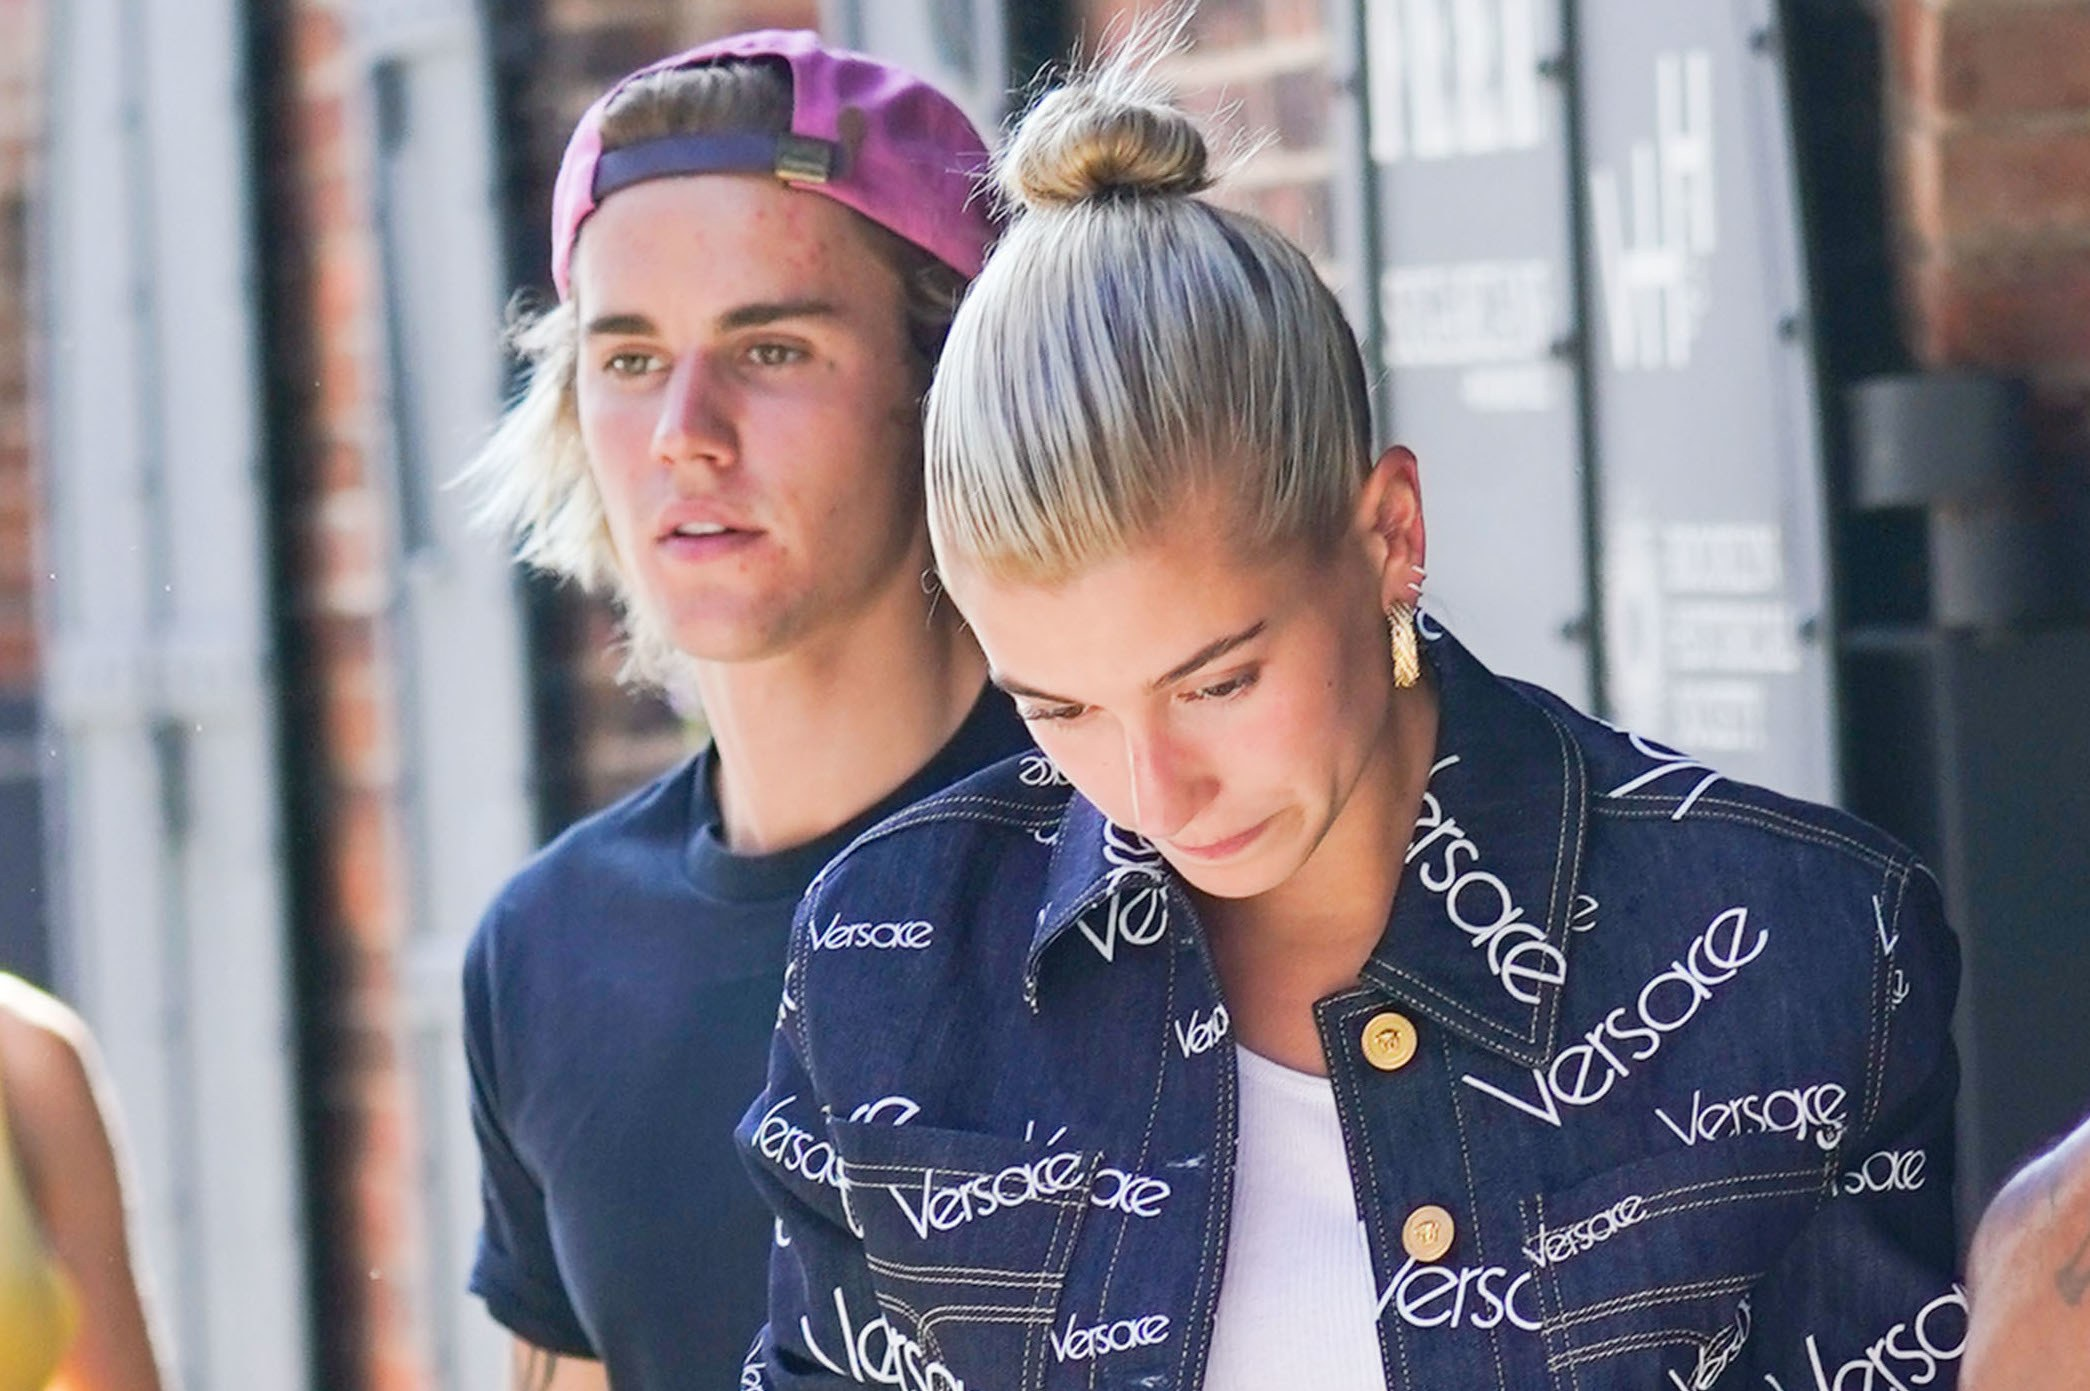 Who is justin bieber dating now 2019 album